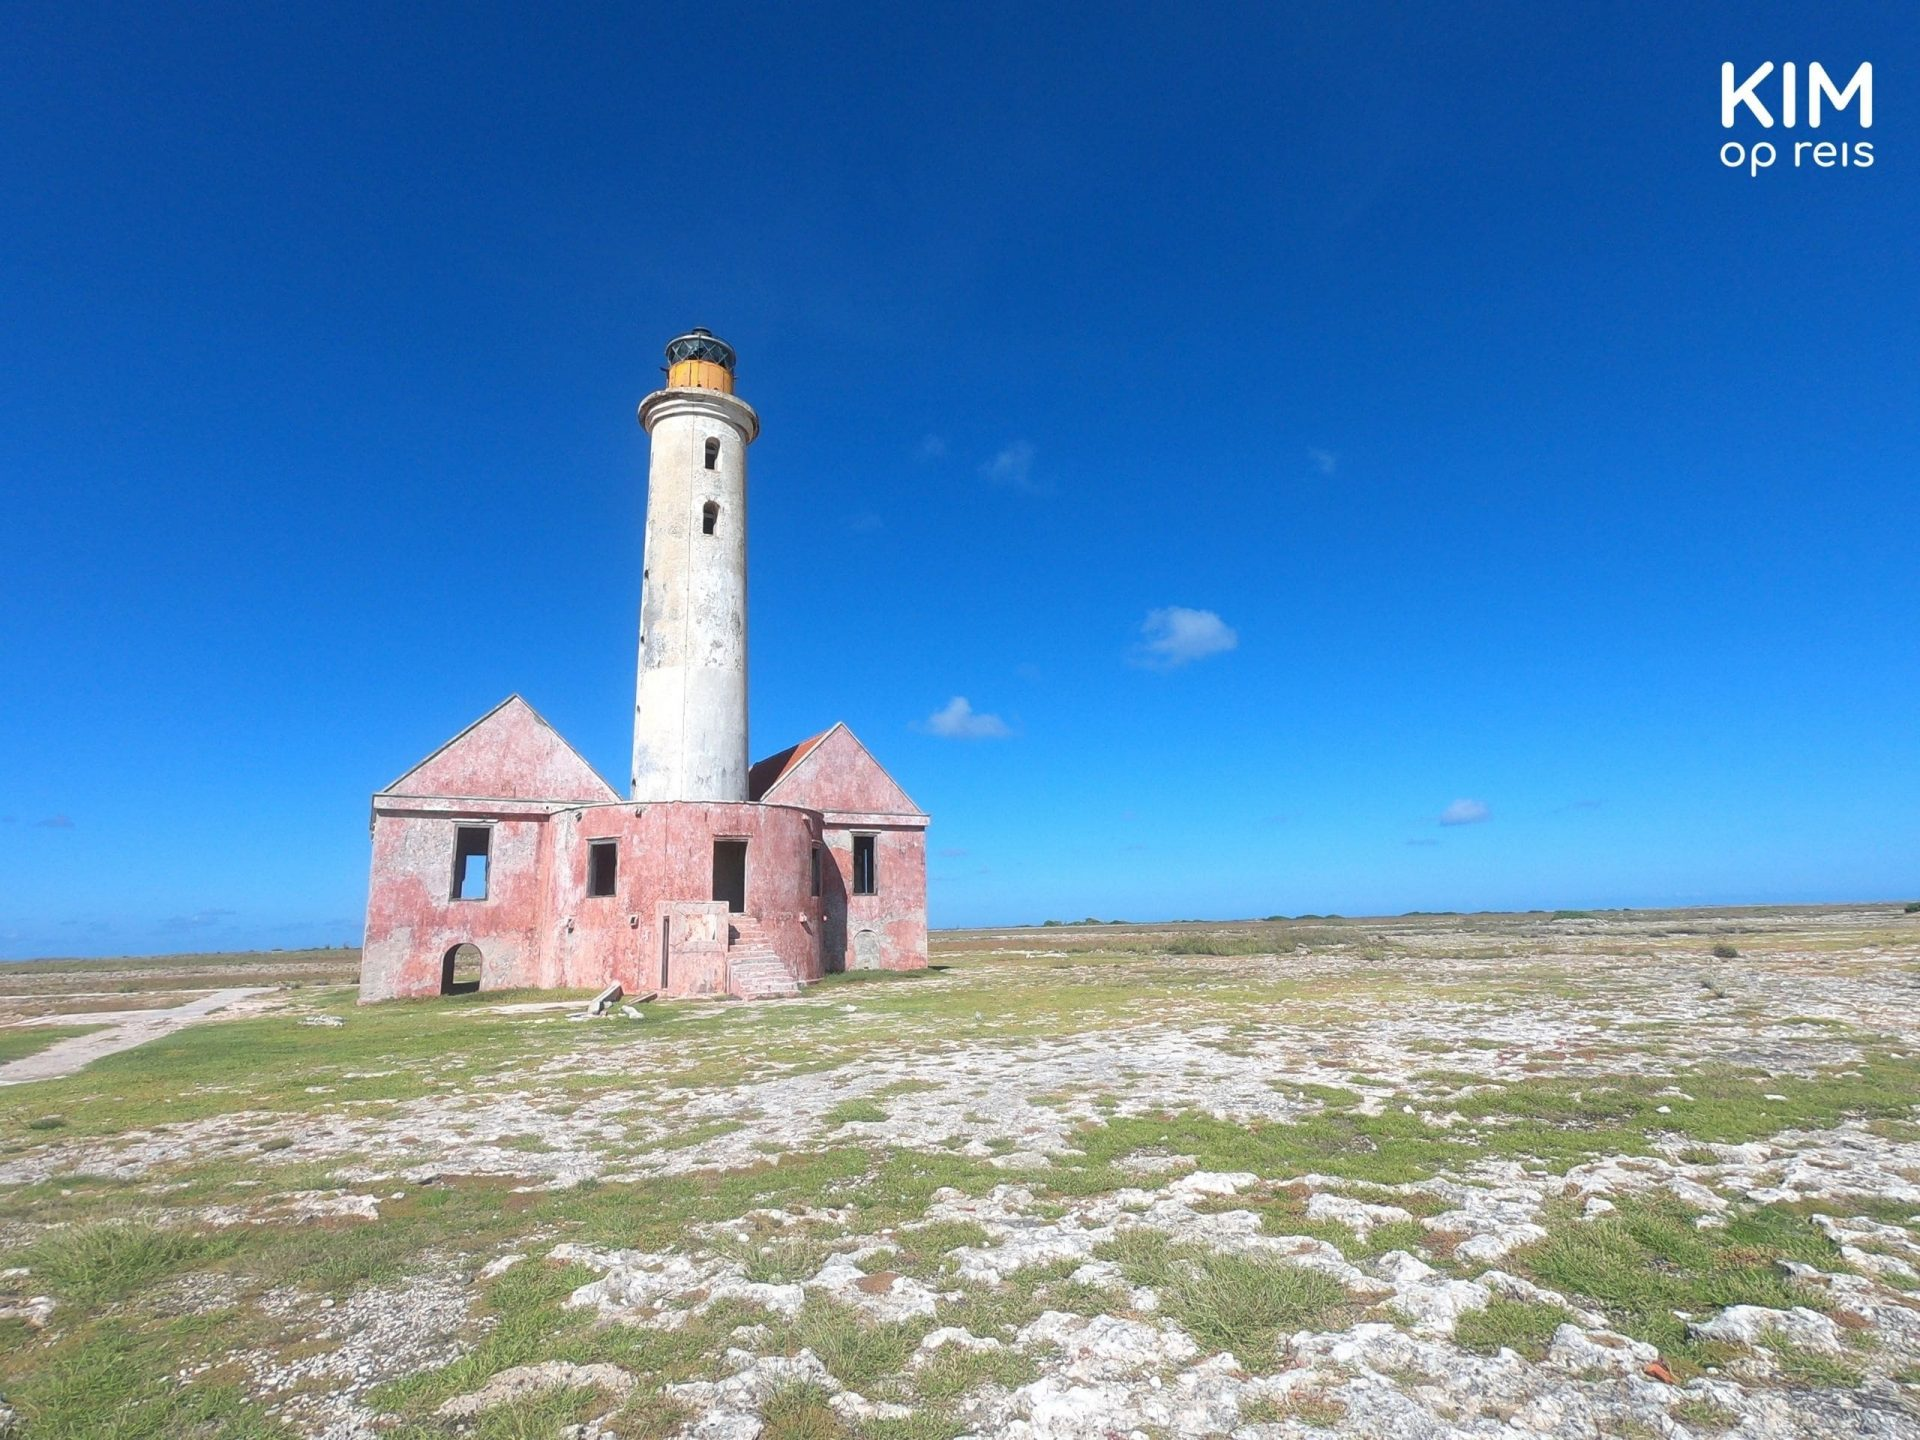 Prins Hendrik lighthouse Klein Curaçao: small, simple lighthouse with a white tower and a pink building on both sides